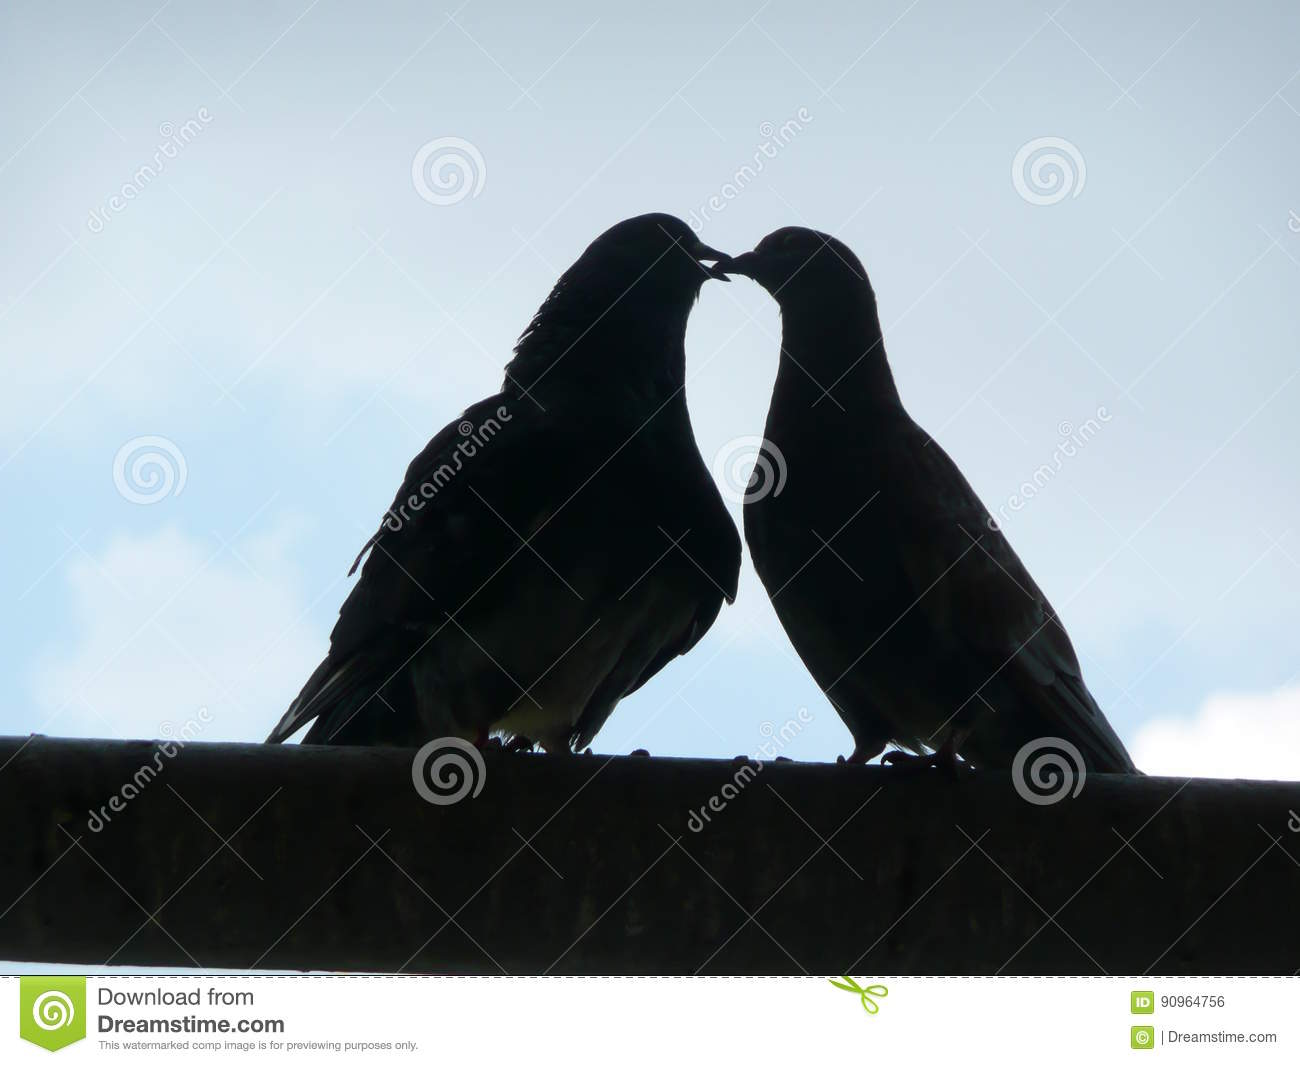 Dark silhouettes of two kissing pigeons